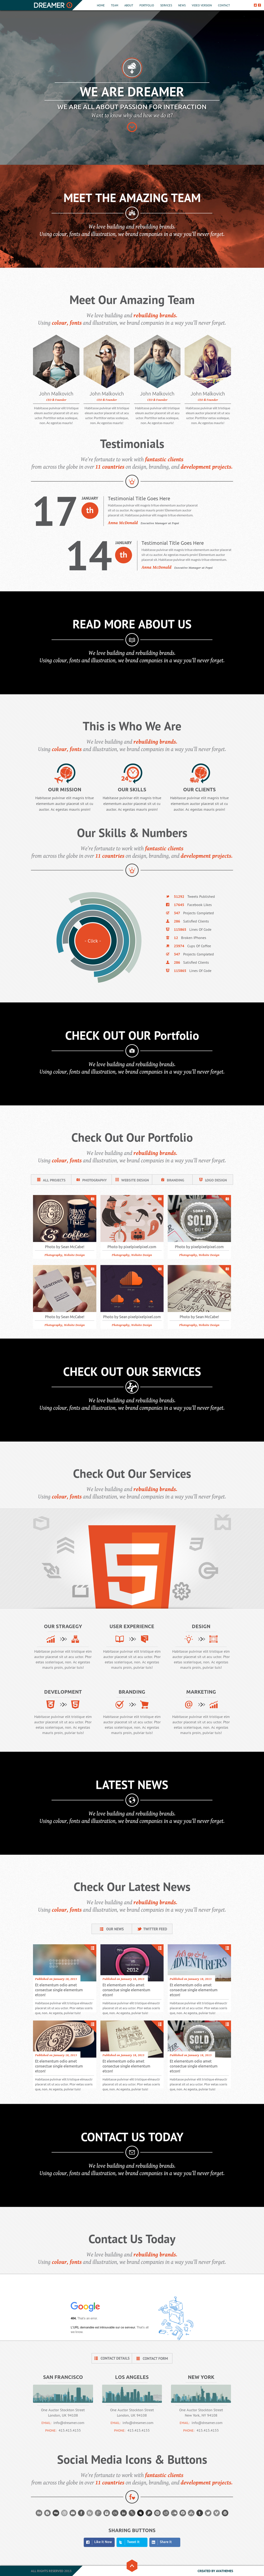 dreamer responsive one page parallax template hypershoot